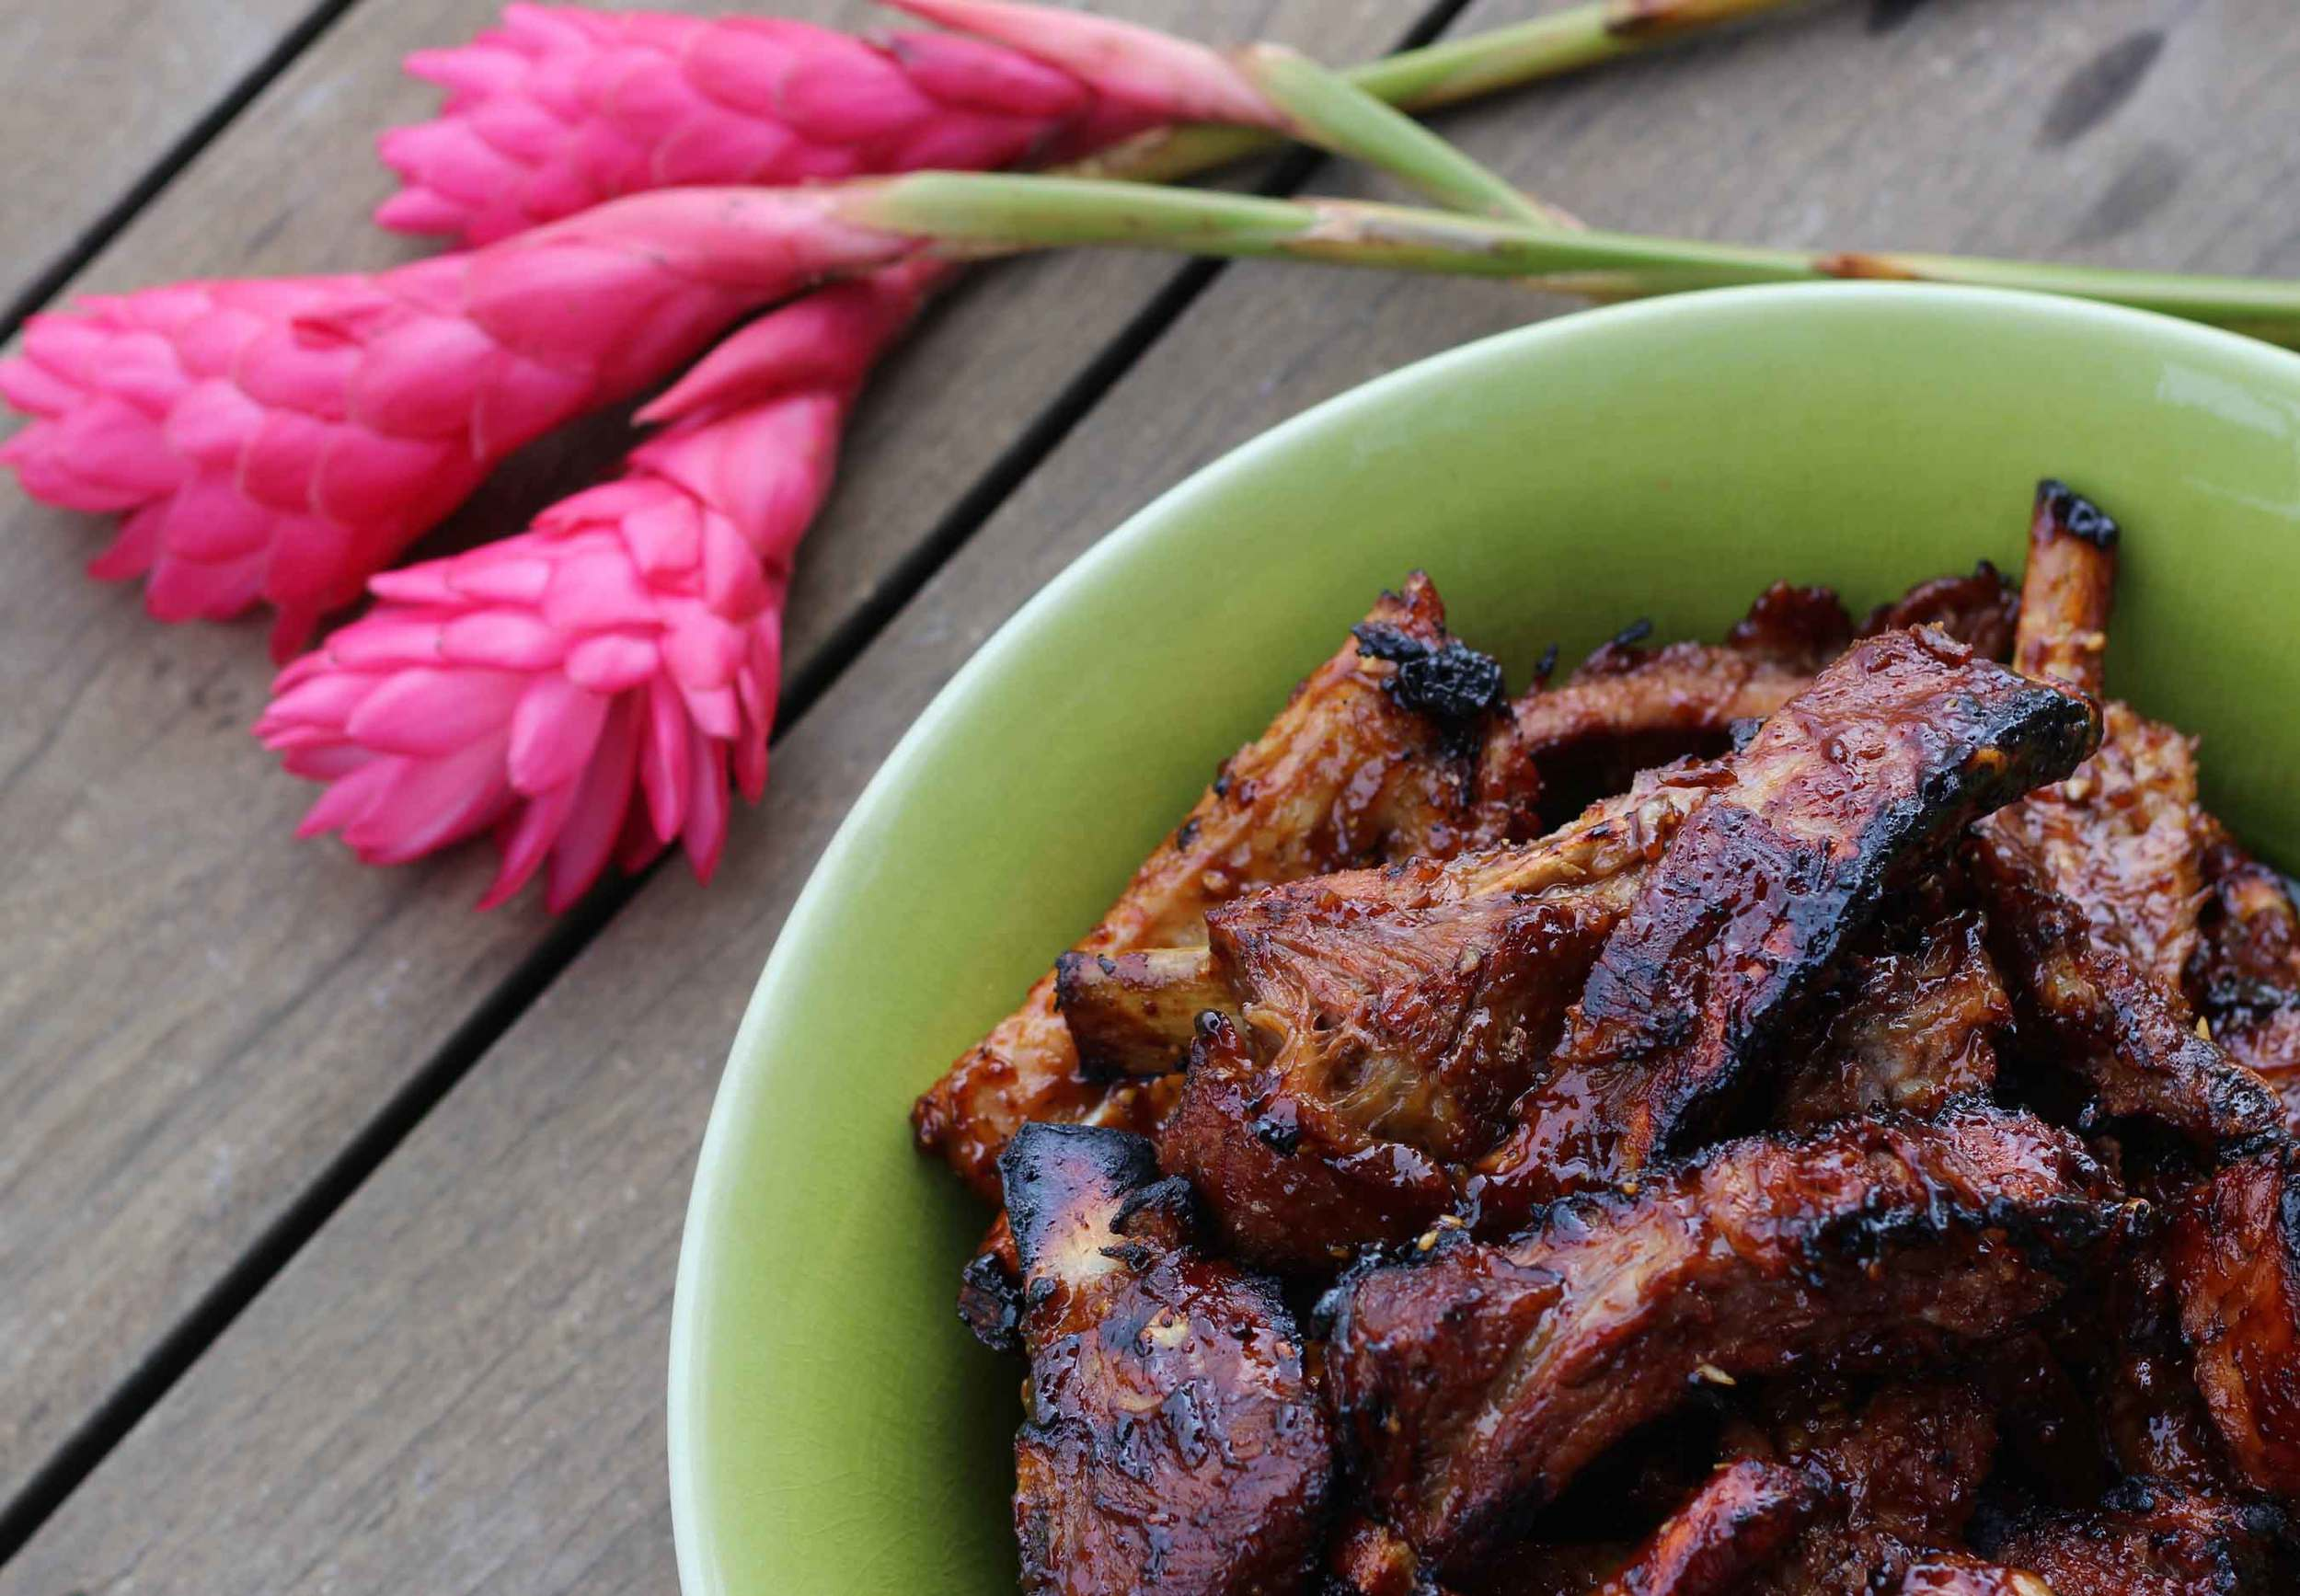 A ready-to-eat platter of barbeque ribs sits next to some tropical pink flowers. Learn how to make delicious but easy ribs. Recipe at Threadandwhisk.com.